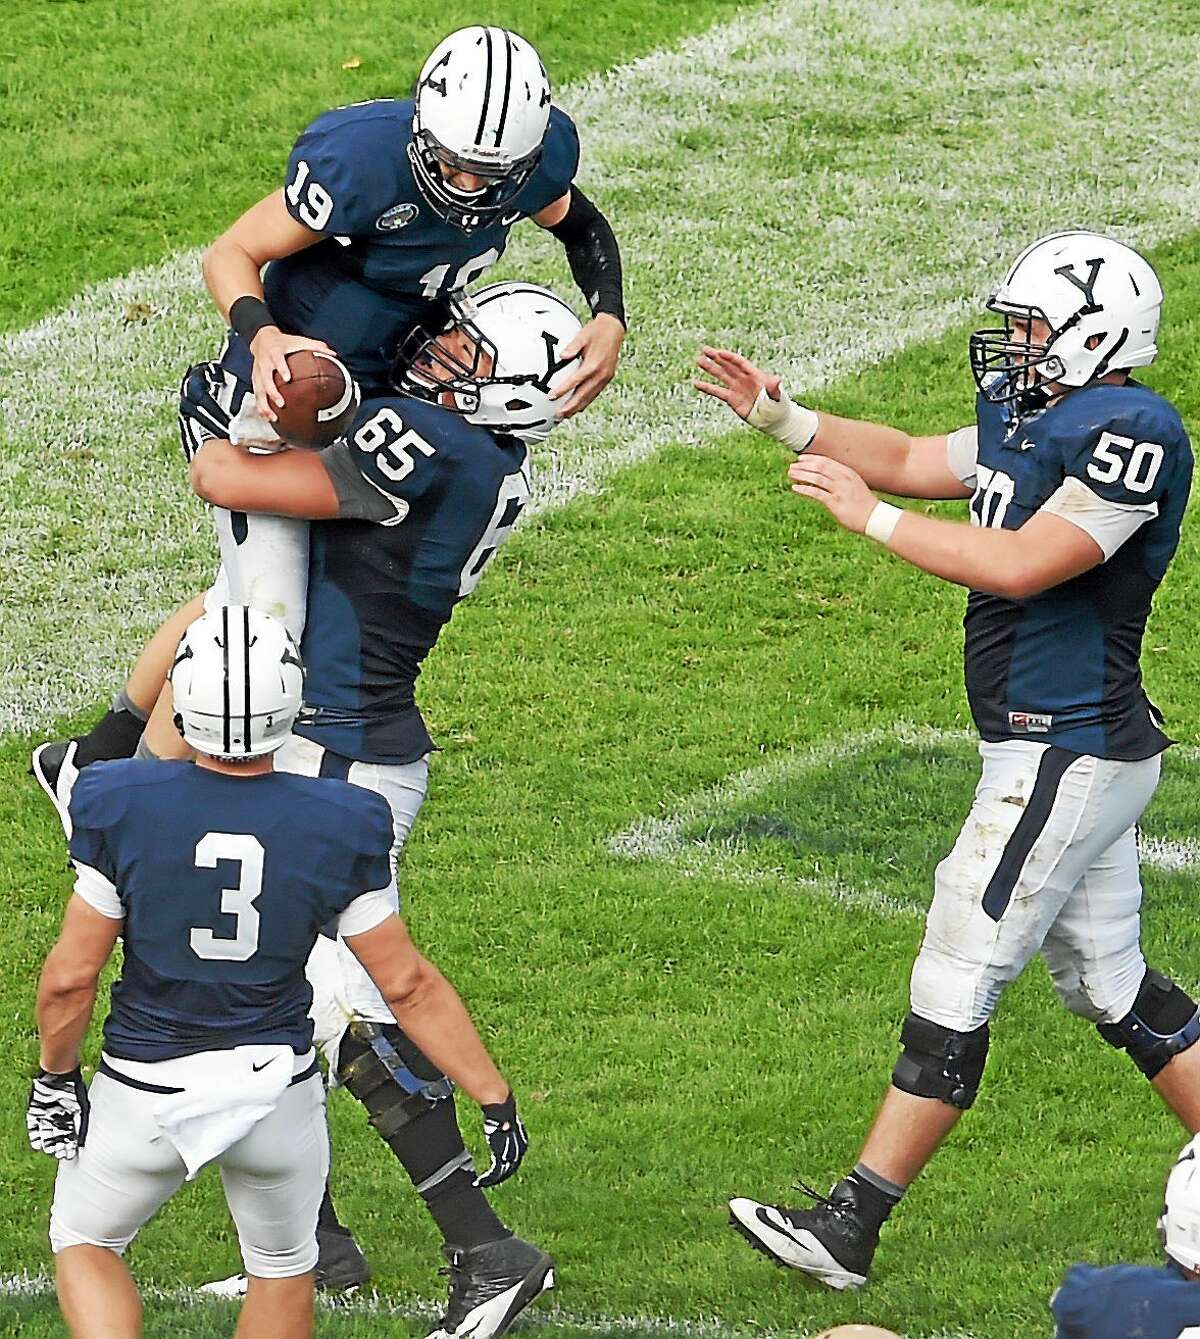 Yale quarterback Morgan Roberts is lifted up in the end zone by teammate Khalid Cannon after Roberts scored a touchdown during the fourth quarter of the Bulldogs' 54-43 win over Lehigh on Saturday at Yale Bowl.